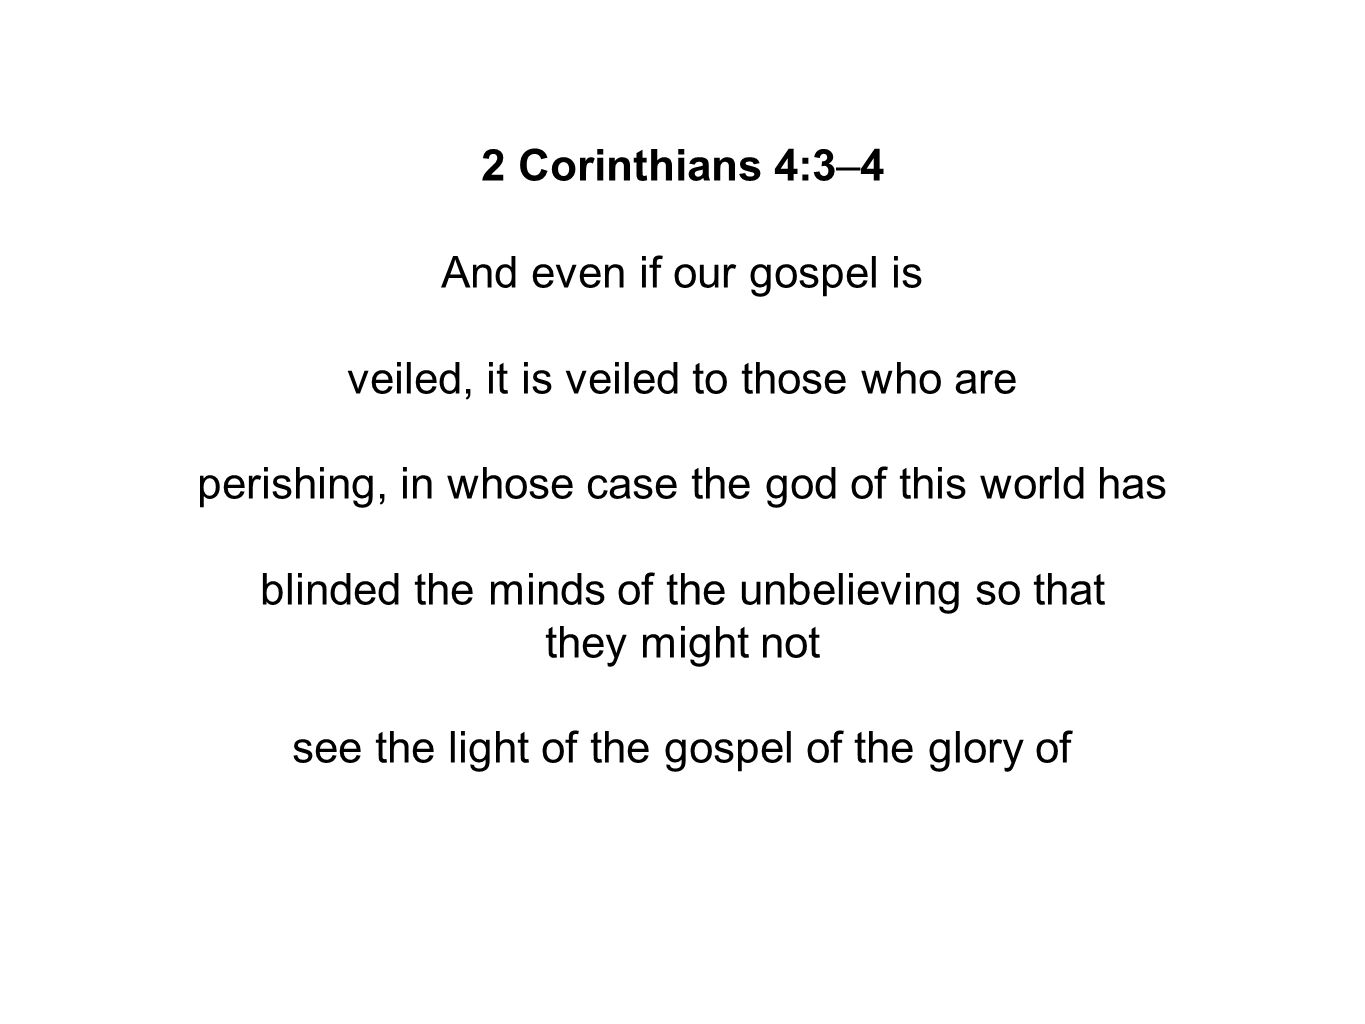 2 Corinthians 4:3–4 And even if our gospel is veiled, it is veiled to those who are perishing, in whose case the god of this world has blinded the minds of the unbelieving so that they might not see the light of the gospel of the glory of